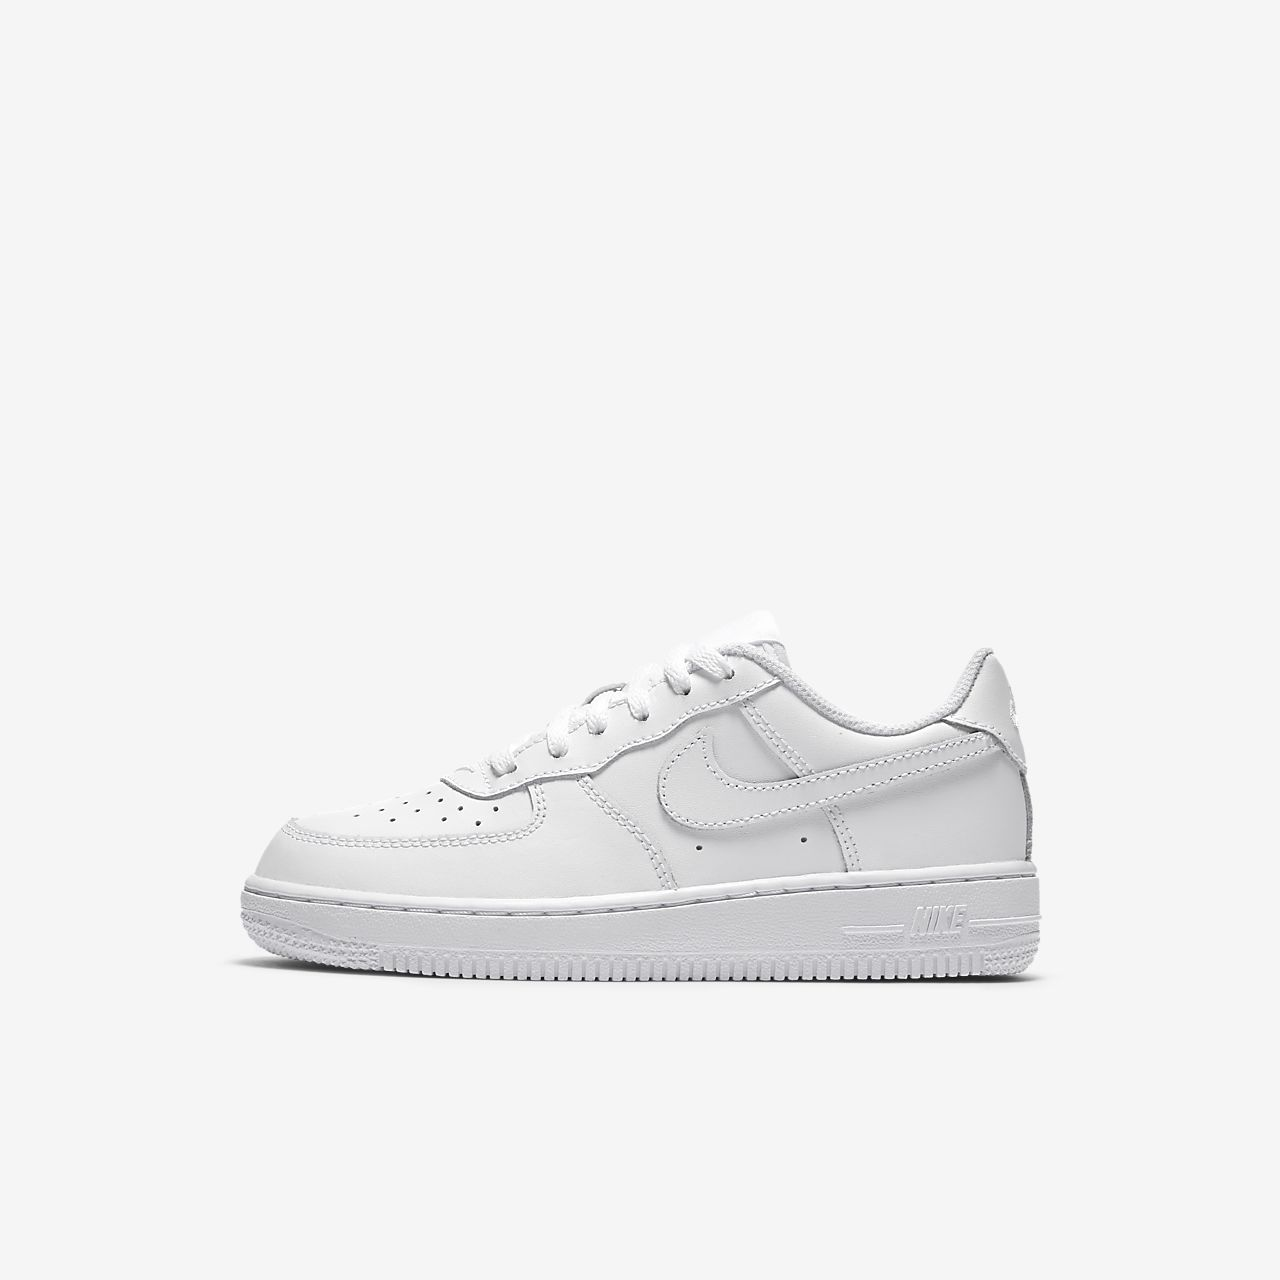 kid nike shoes air force 1 nz